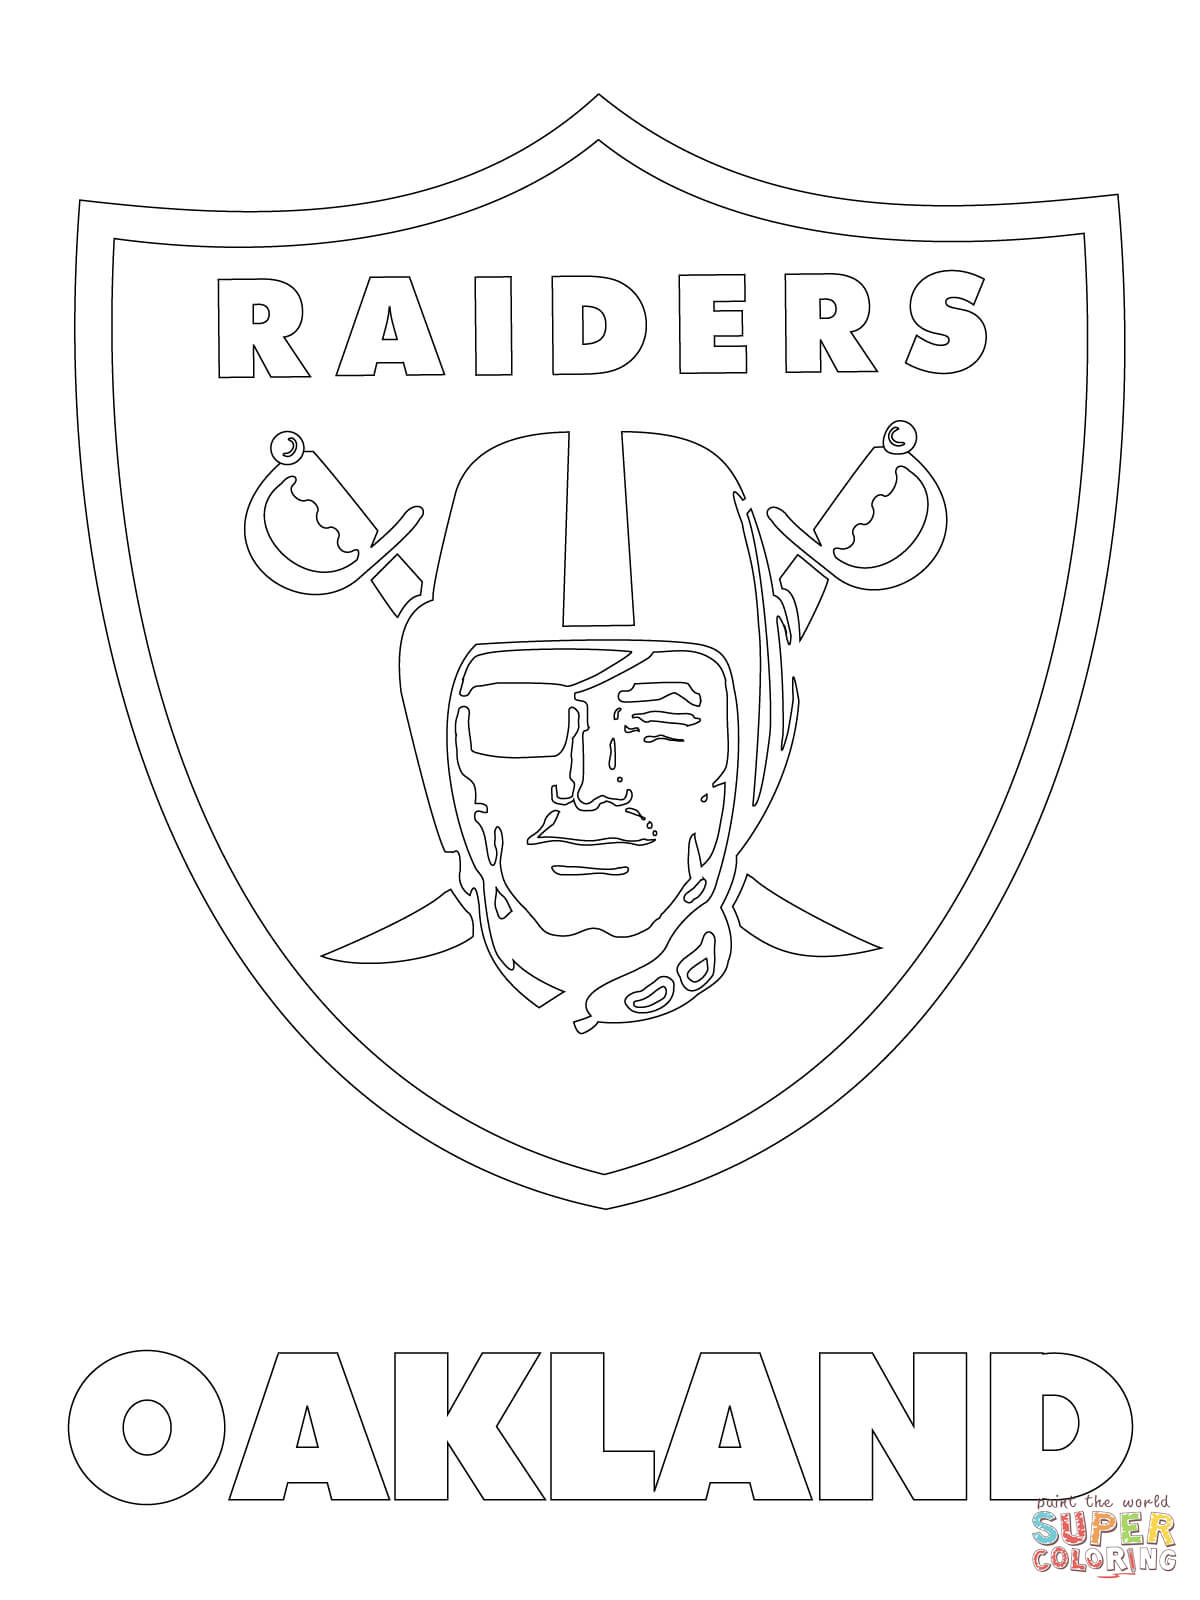 Printable coloring pages nfl logos - Oakland Raiders Logo Coloring Page Free Printable Coloring Pages